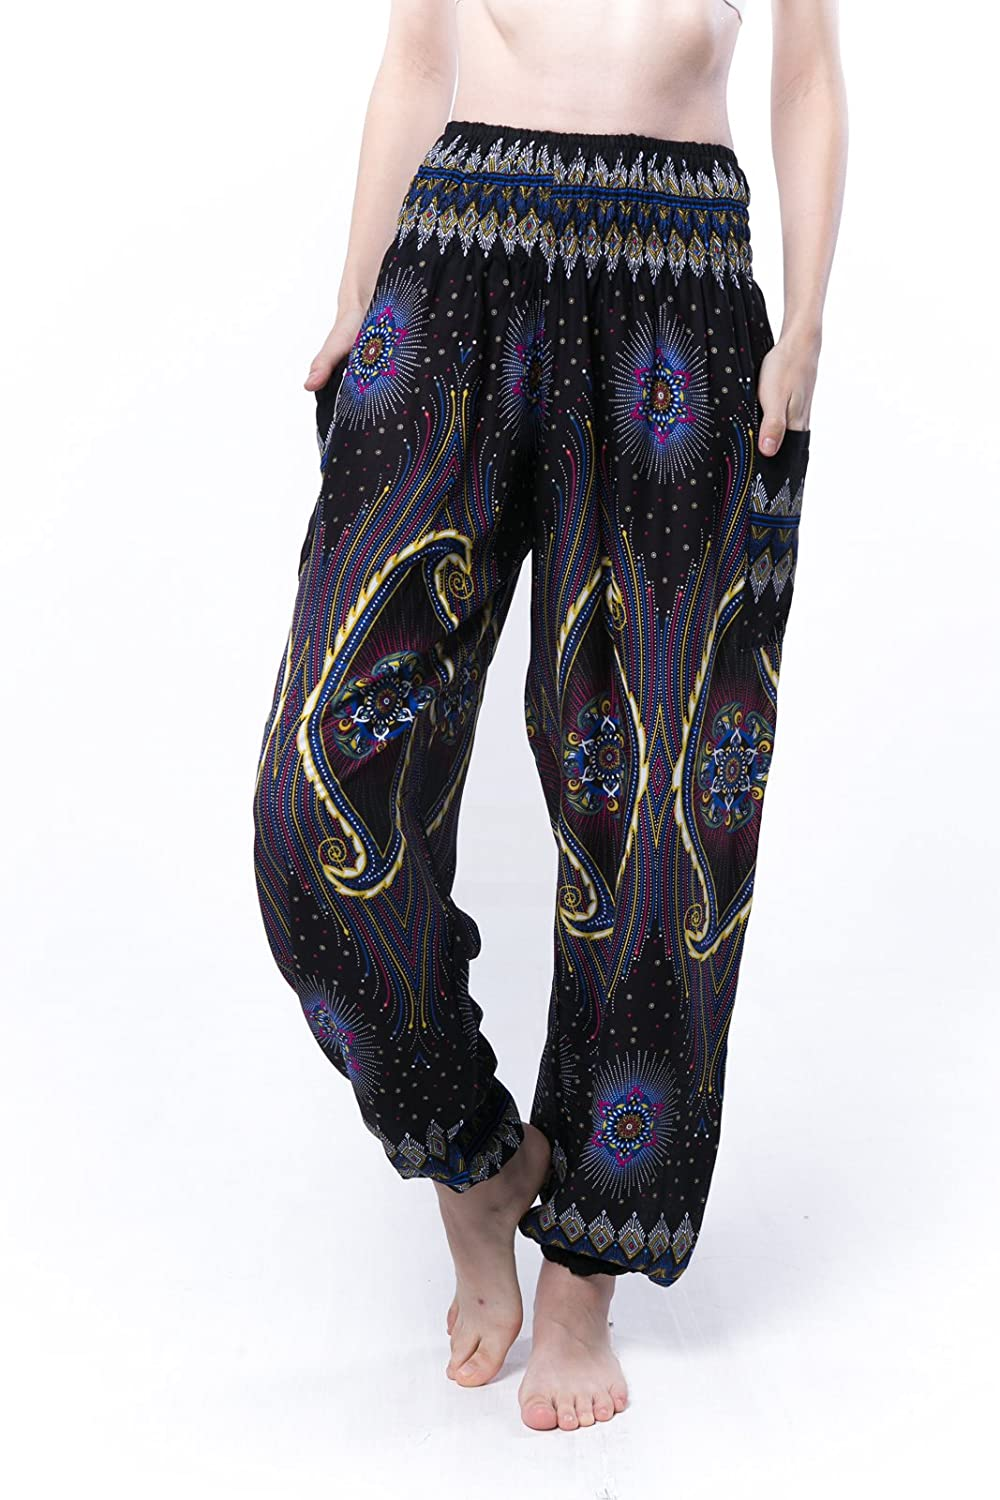 98f9cdb724 SPOT ON FIT: These regular ONE SIZE FIT ALL Thai Harem pants measure about  US size 2-16: Stretchy Waist approx 22